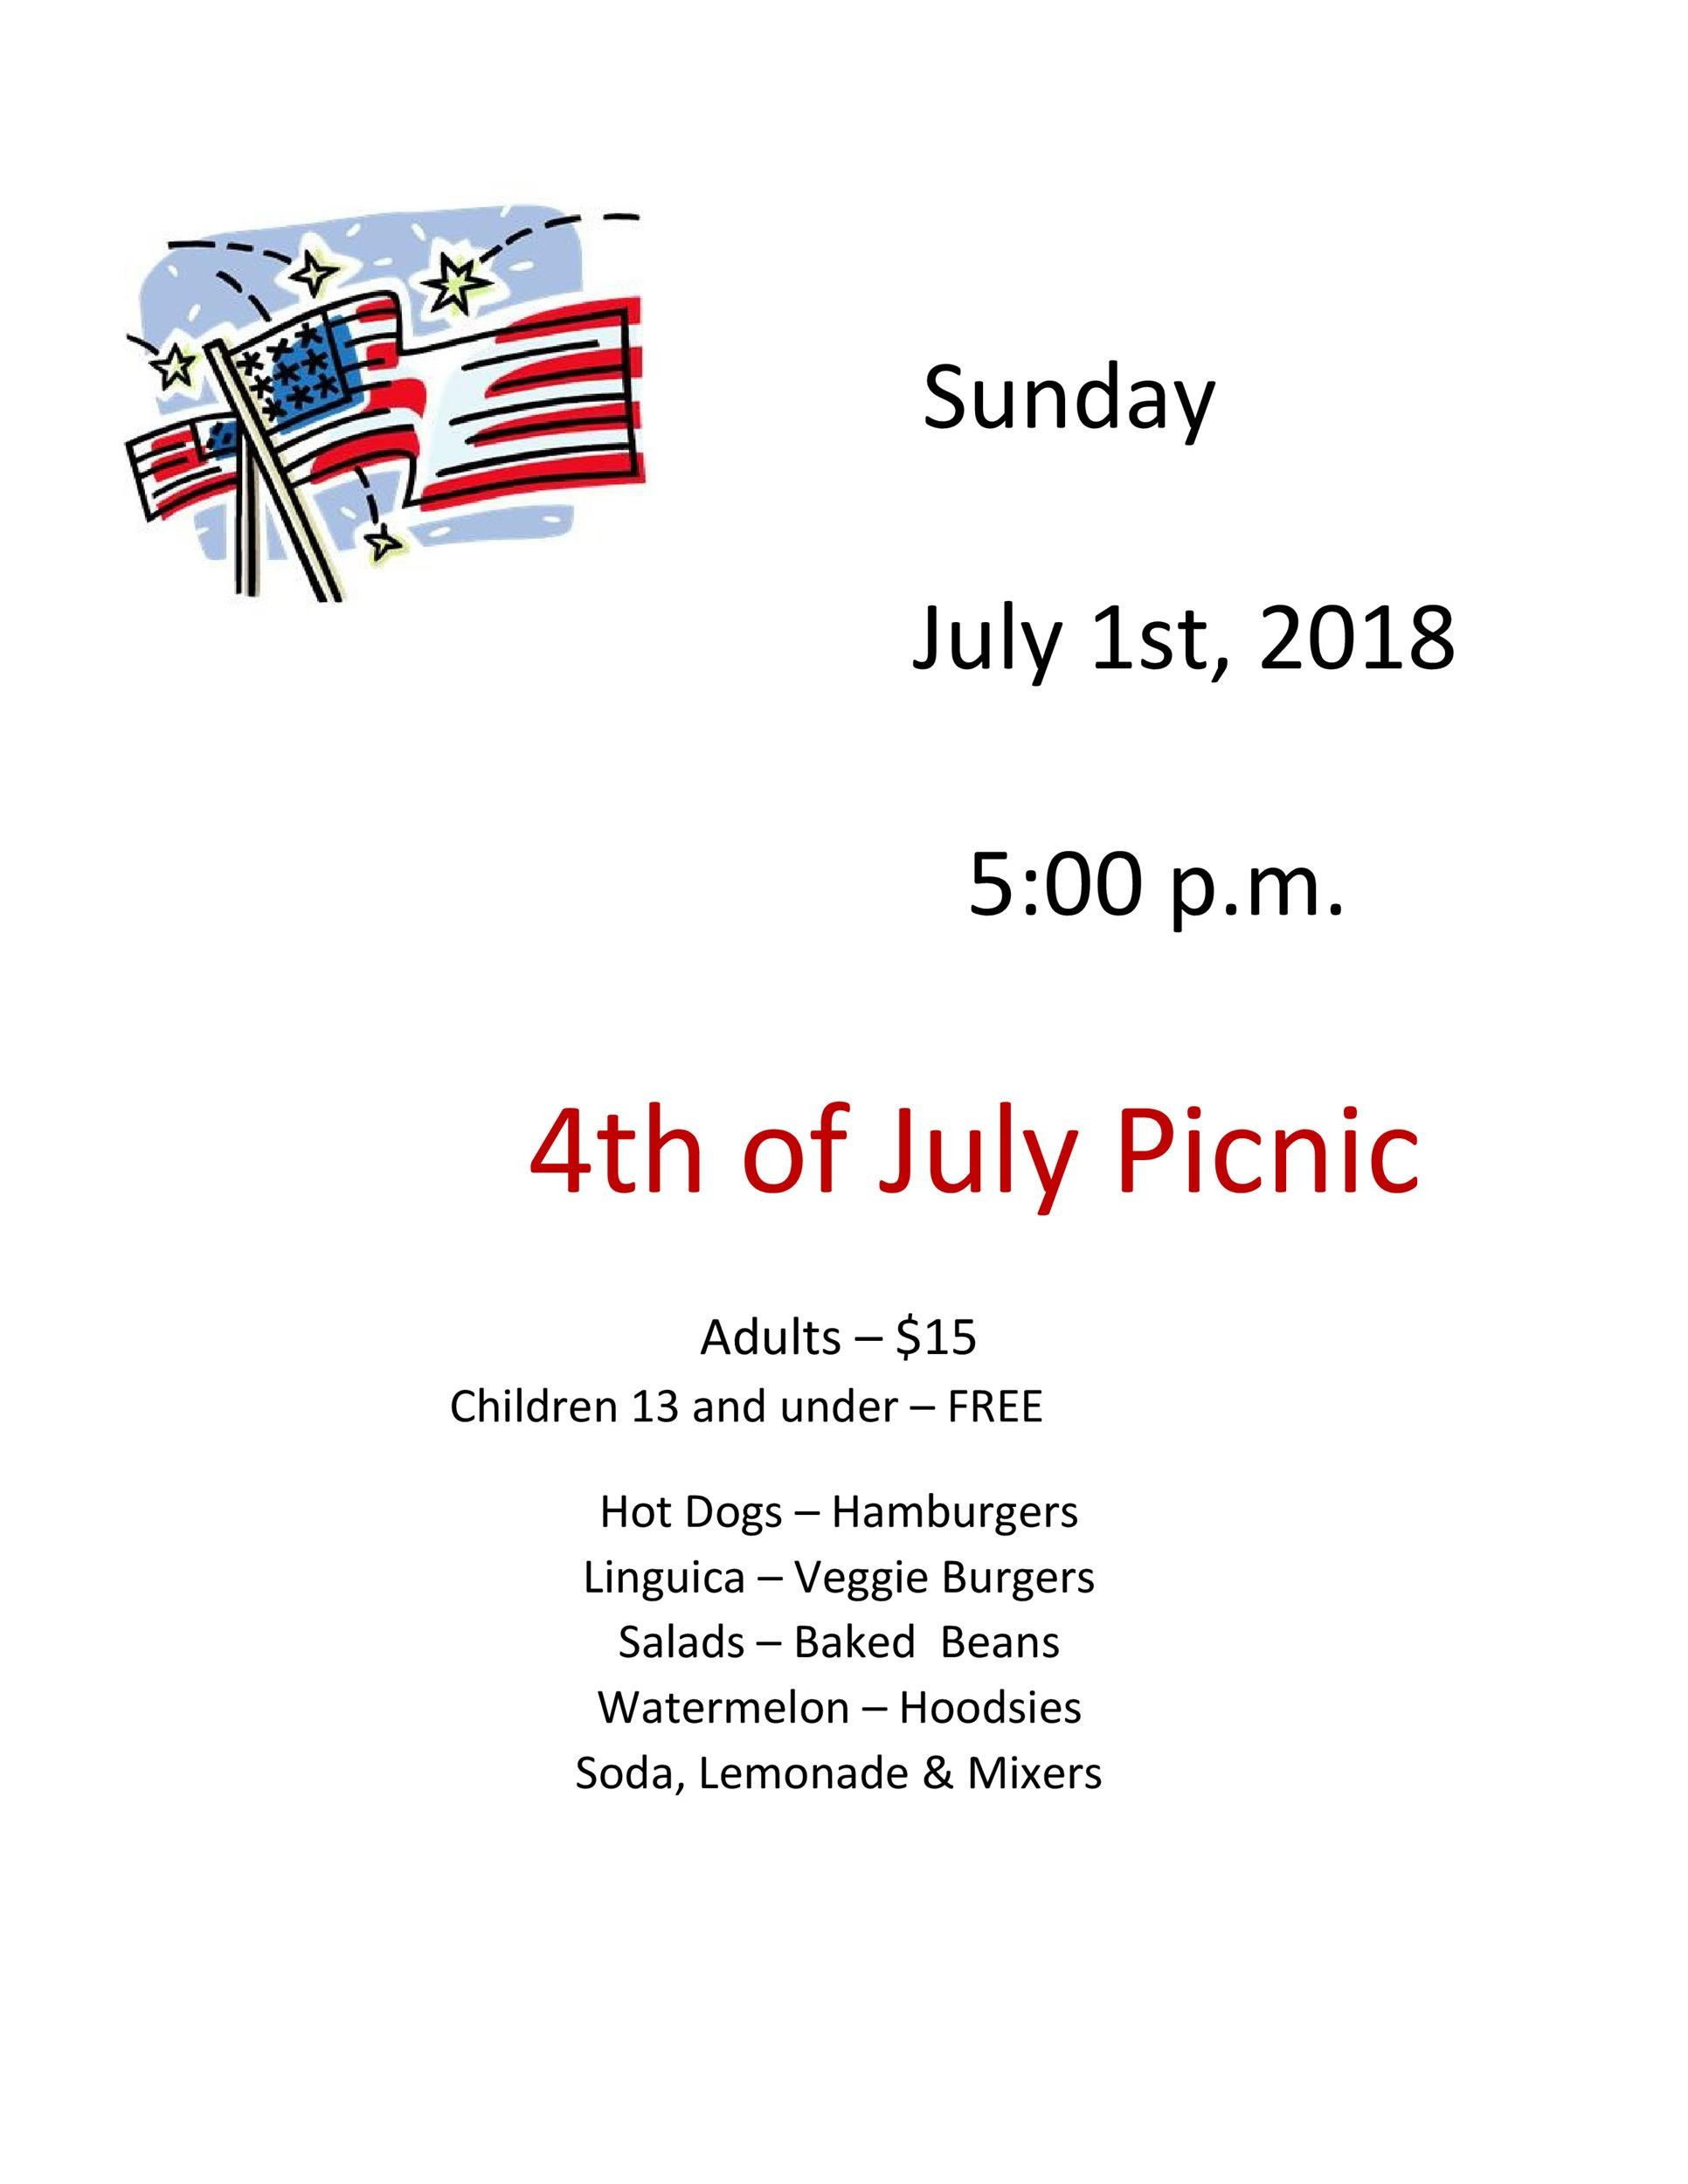 Free picnic flyer template 12